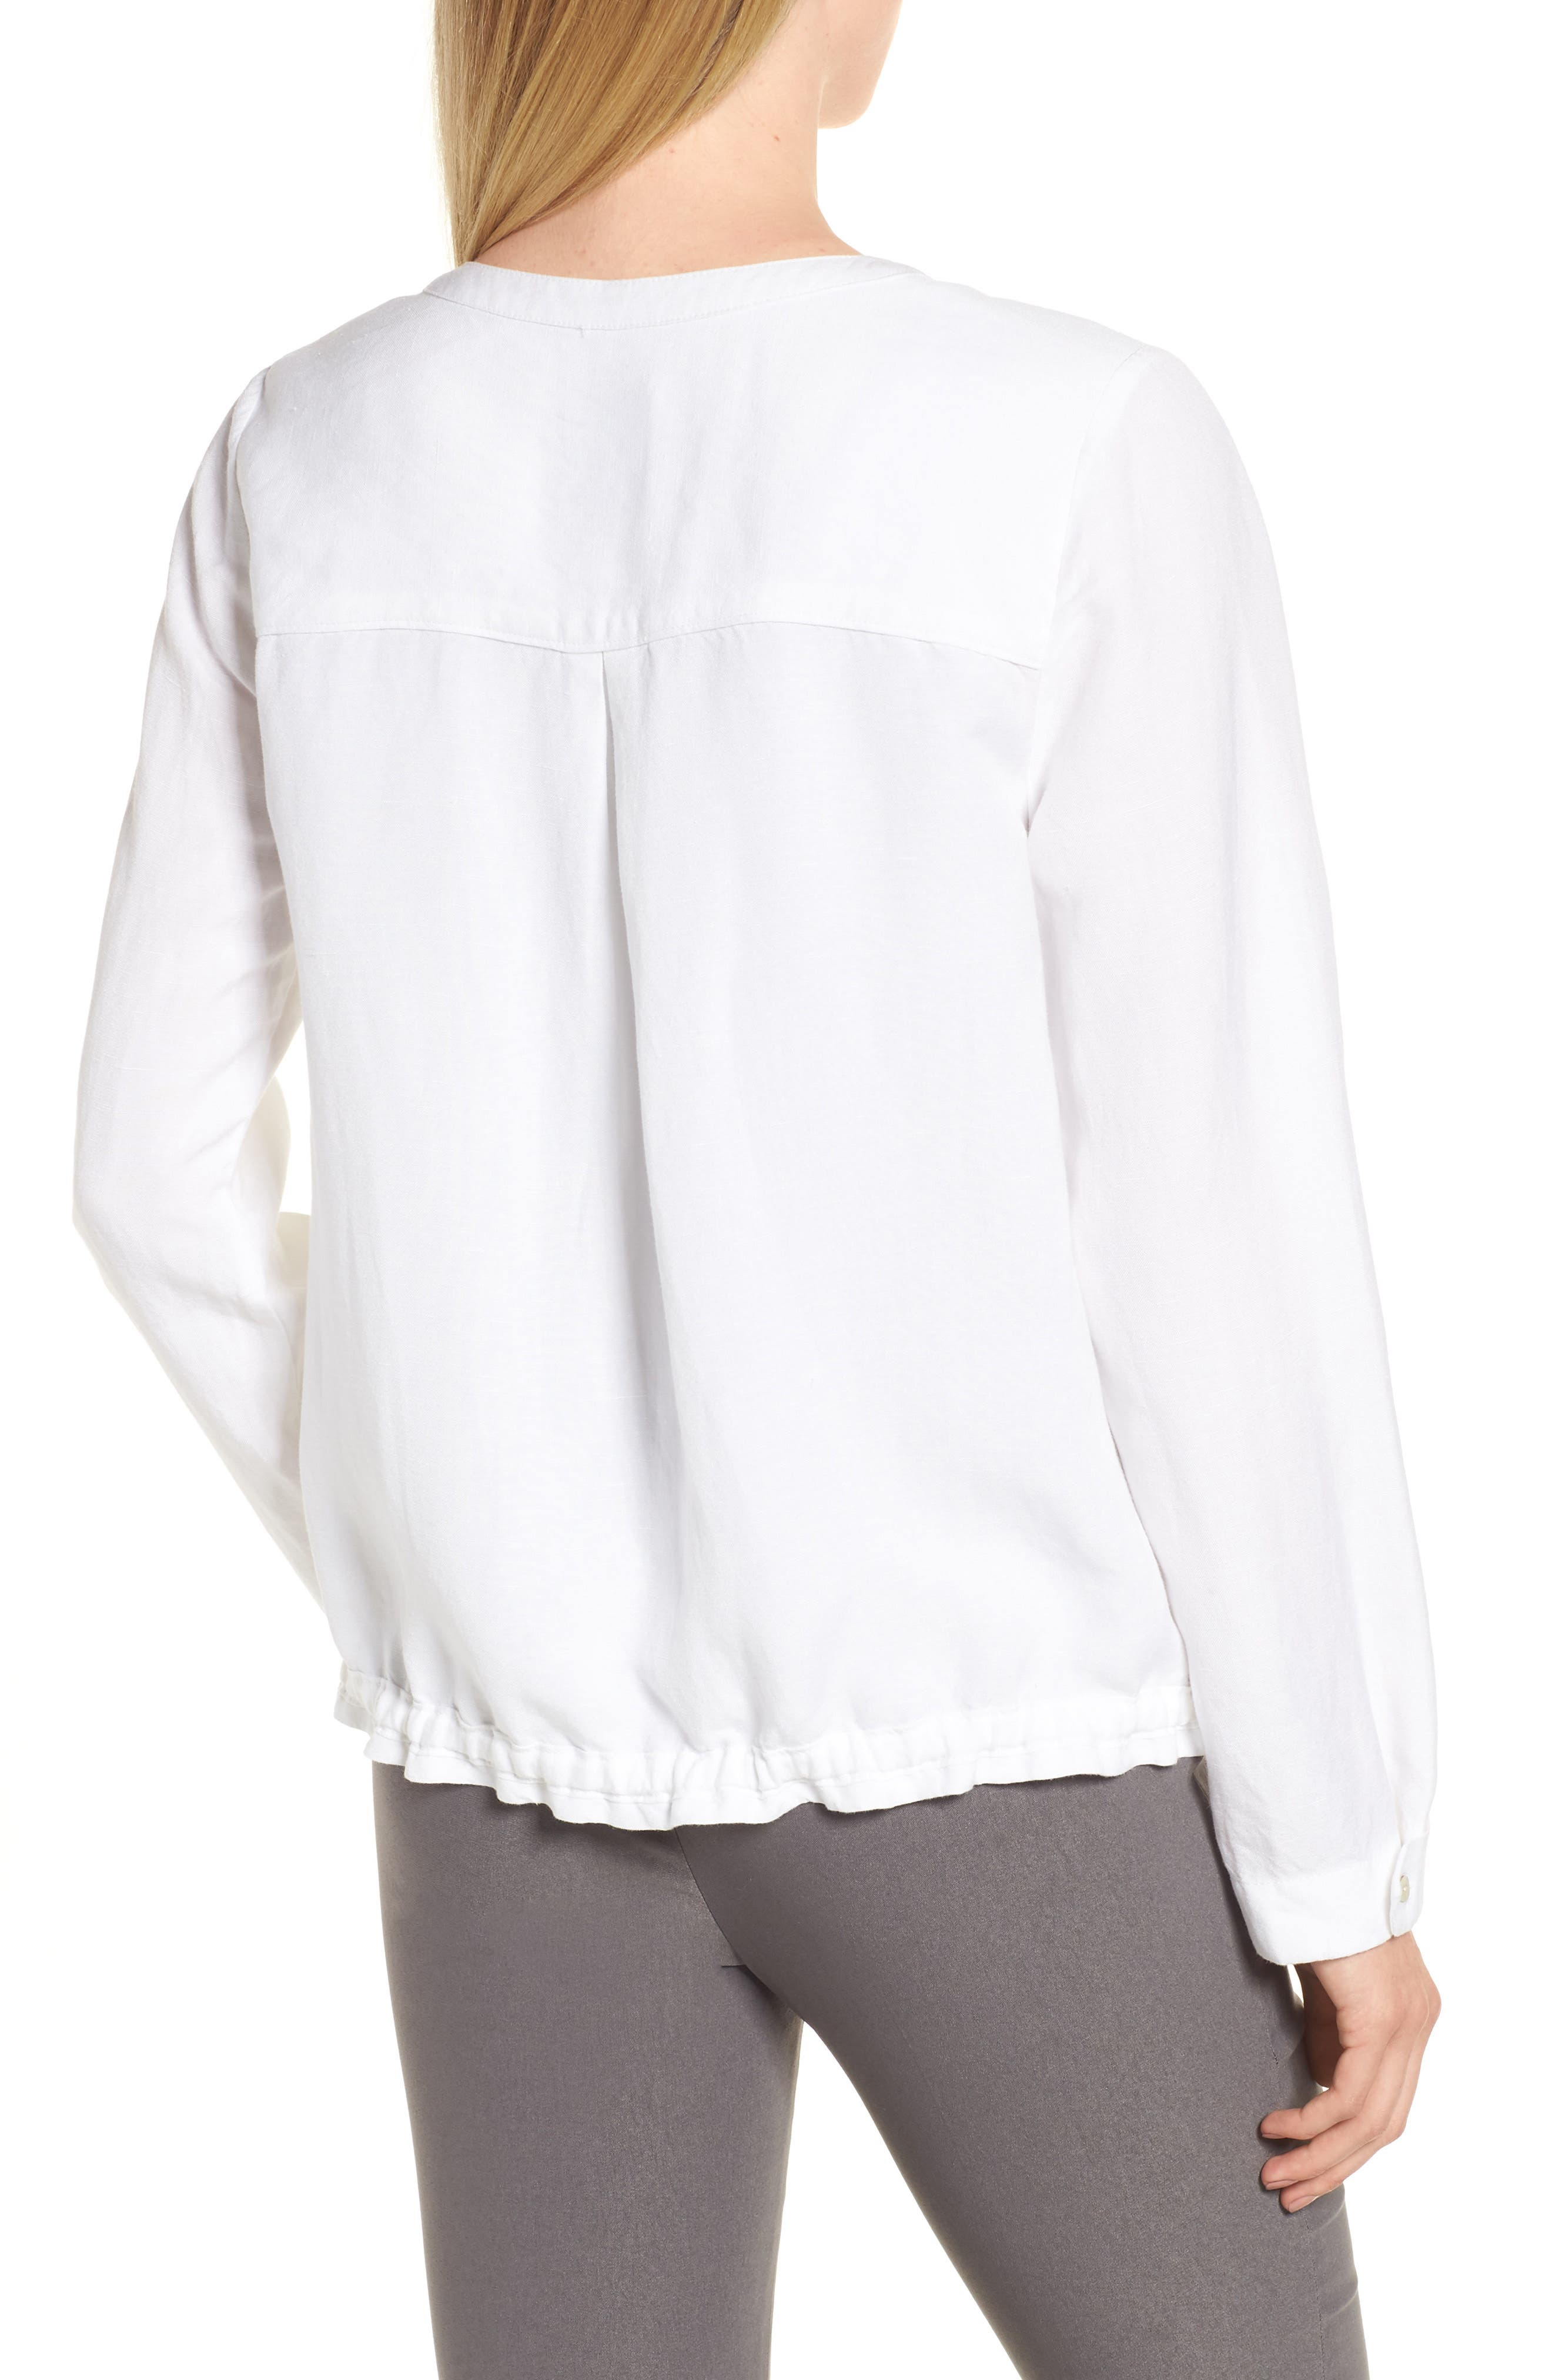 Homebound Linen Blend Drawstring Jacket,                             Alternate thumbnail 2, color,                             Paper White